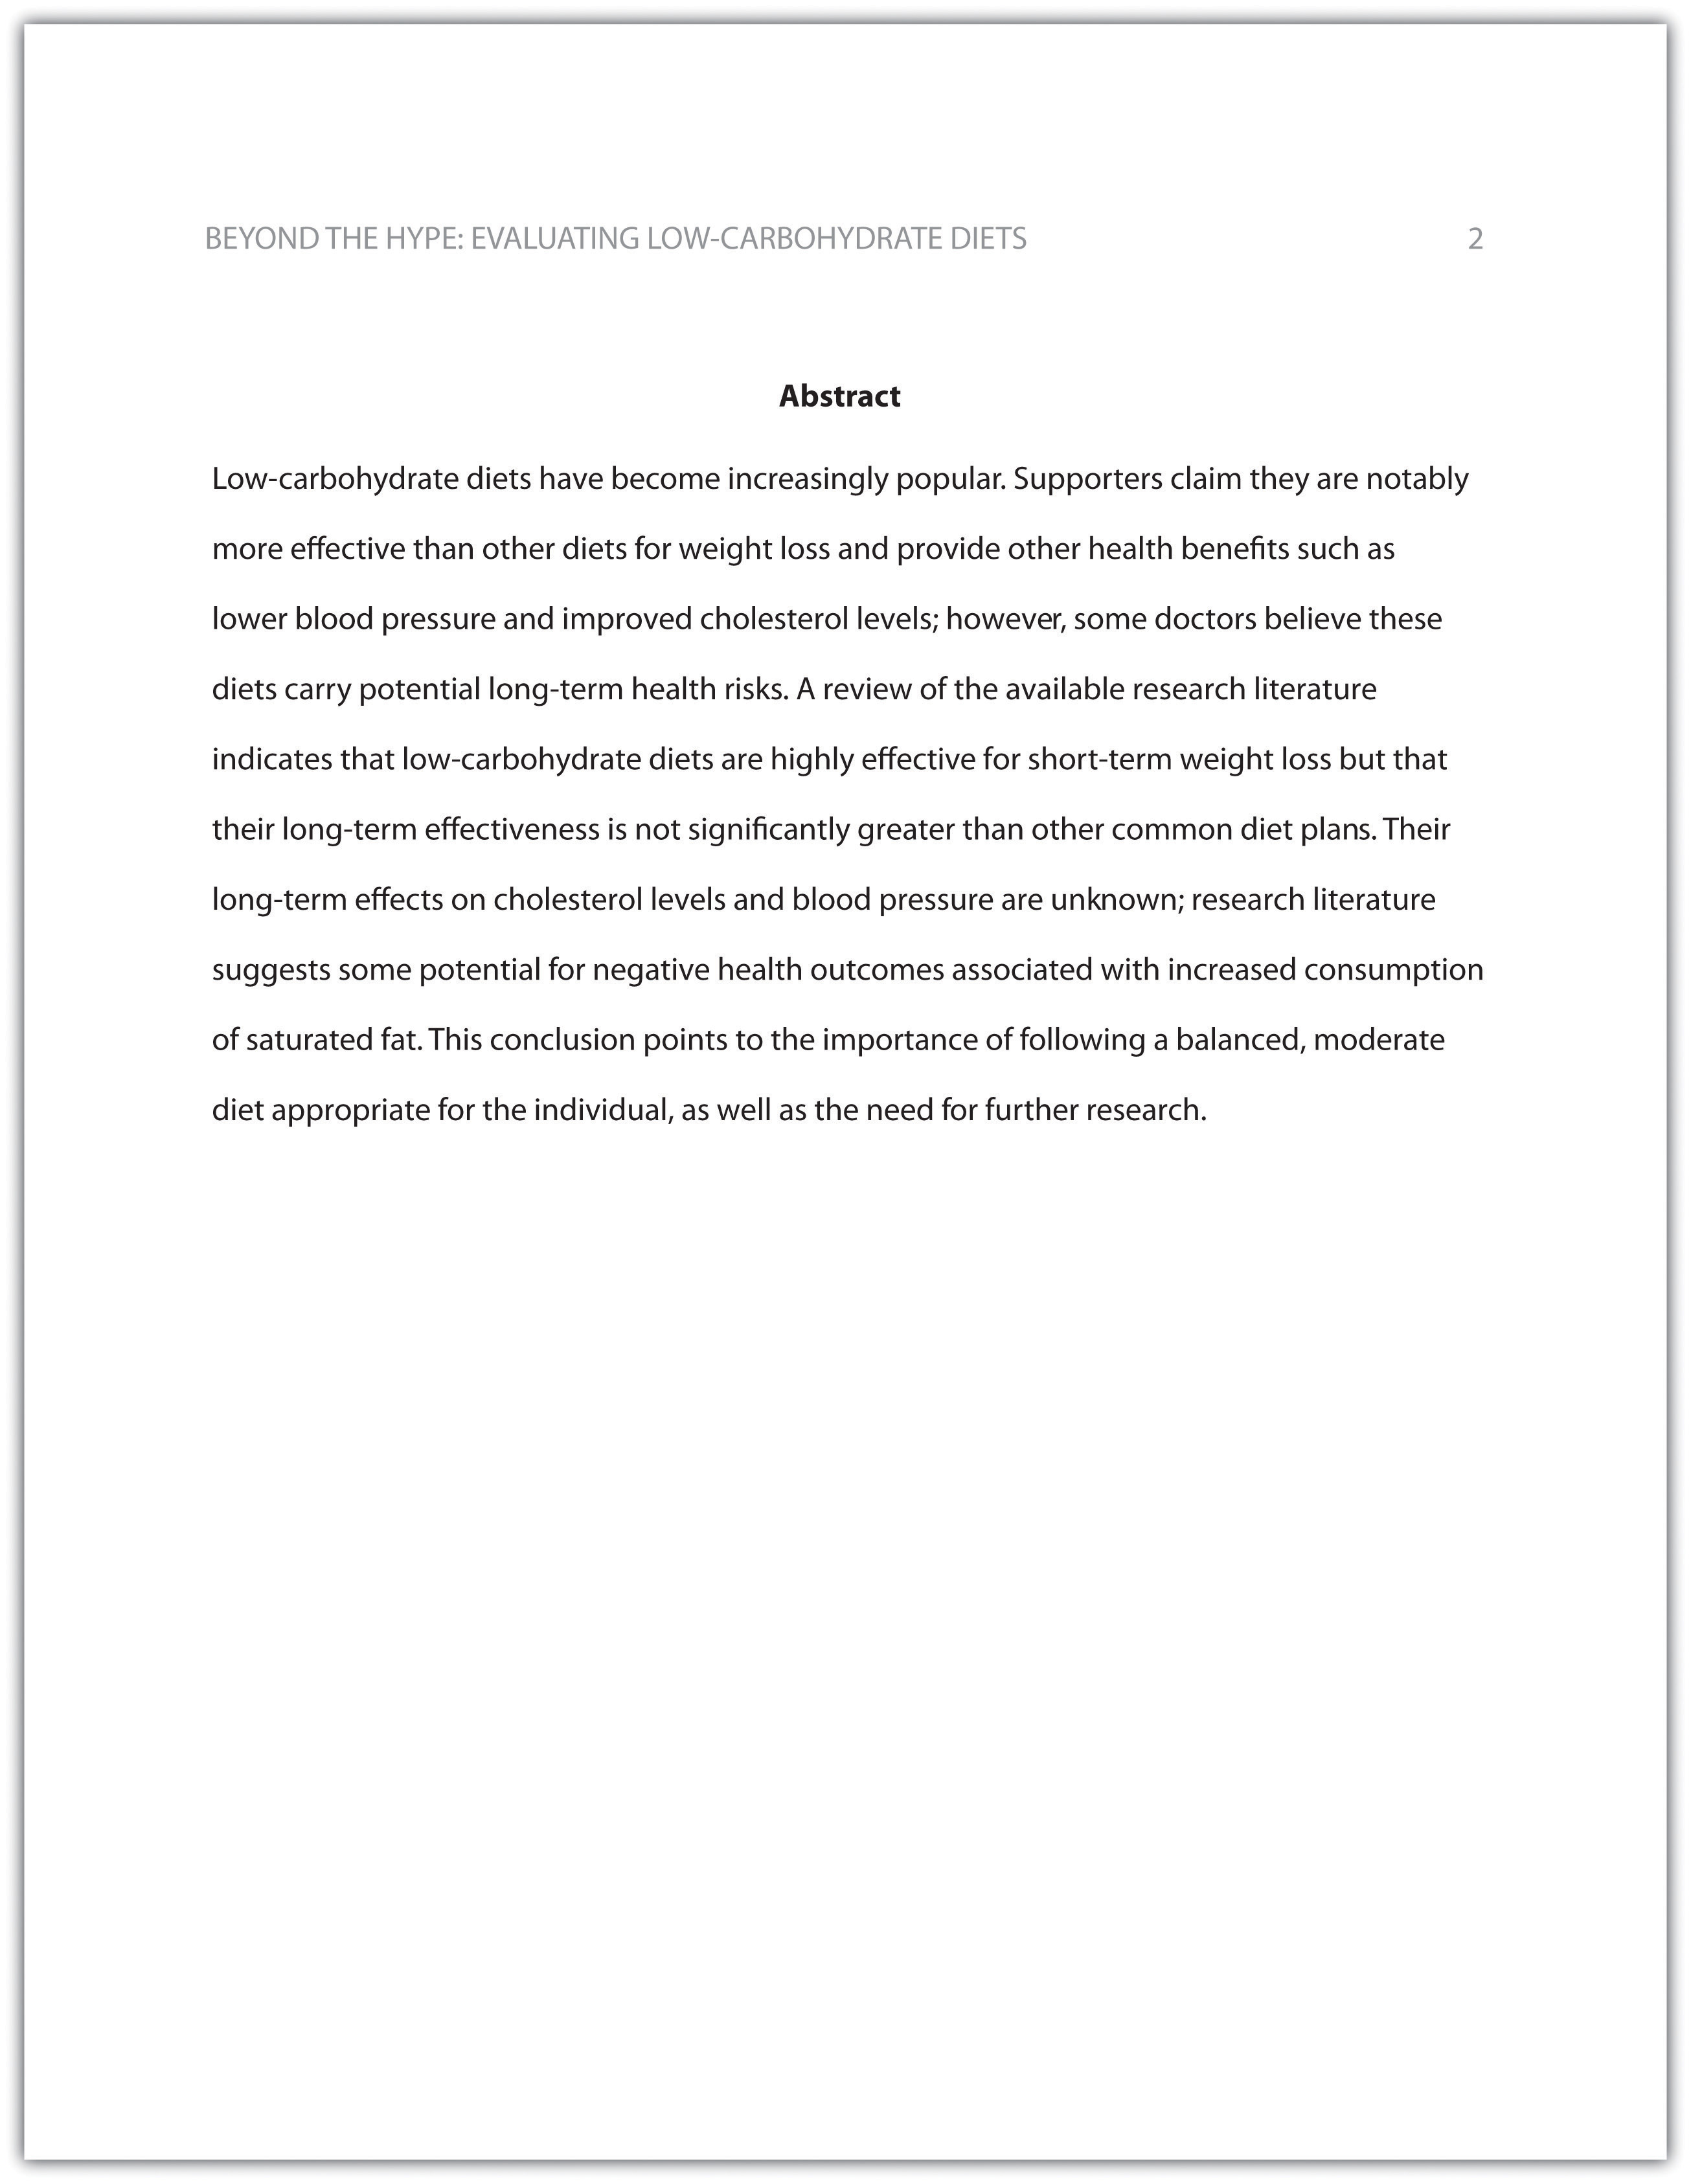 Business Research Paper Ideas Good Cover Letter For An Internship